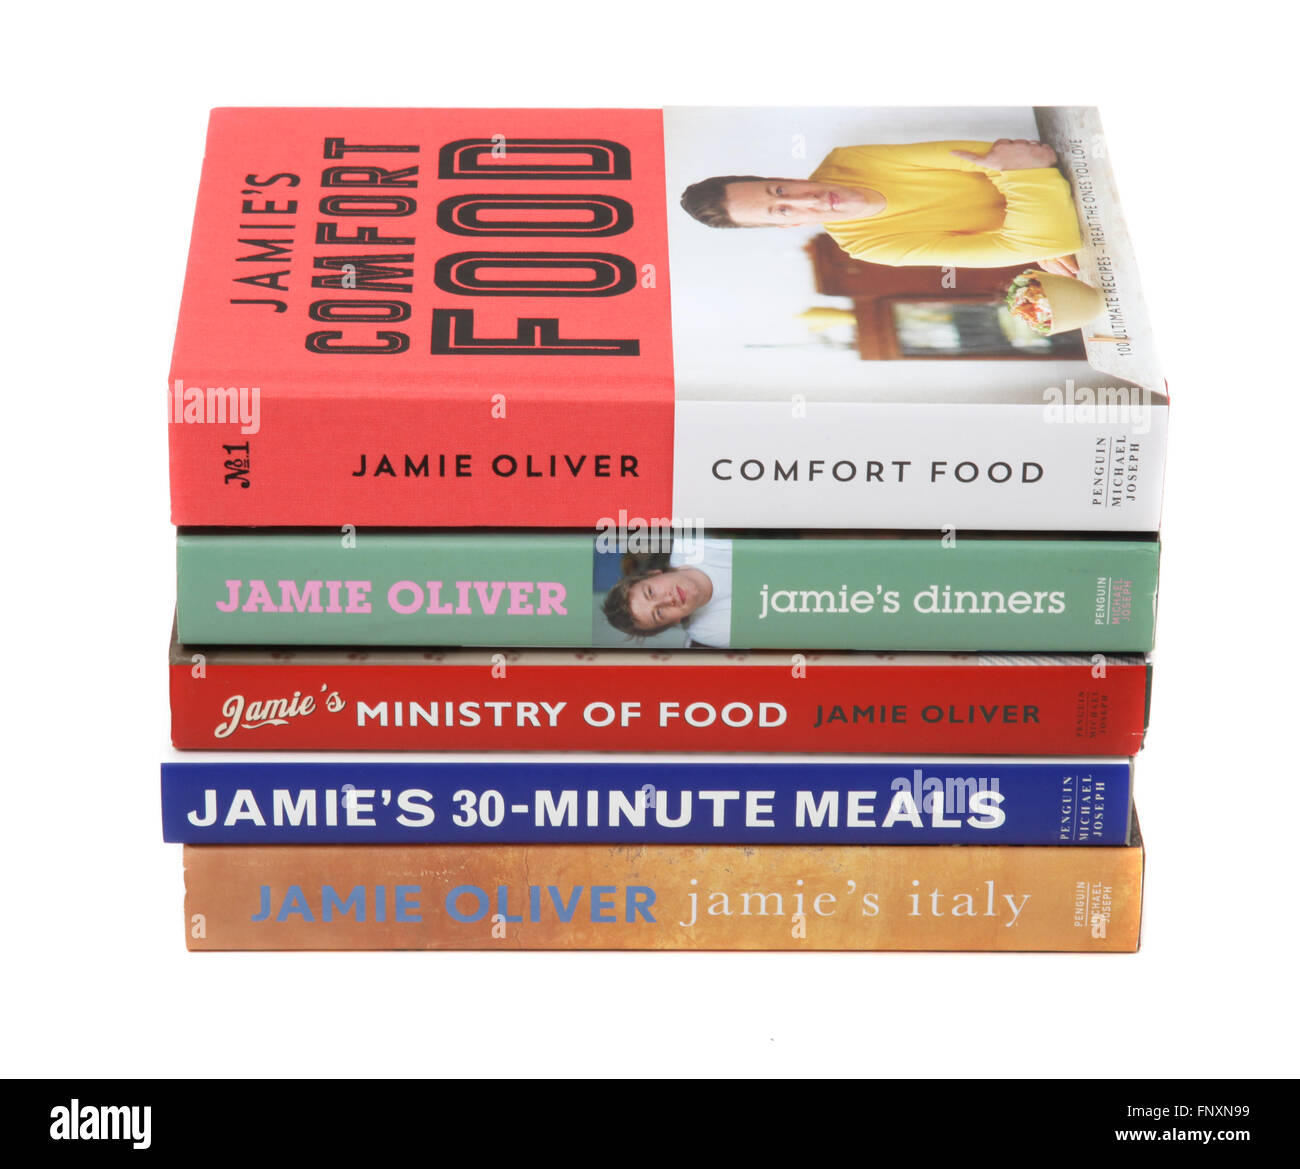 A selection of Jamie Oliver cookery books. - Stock Image